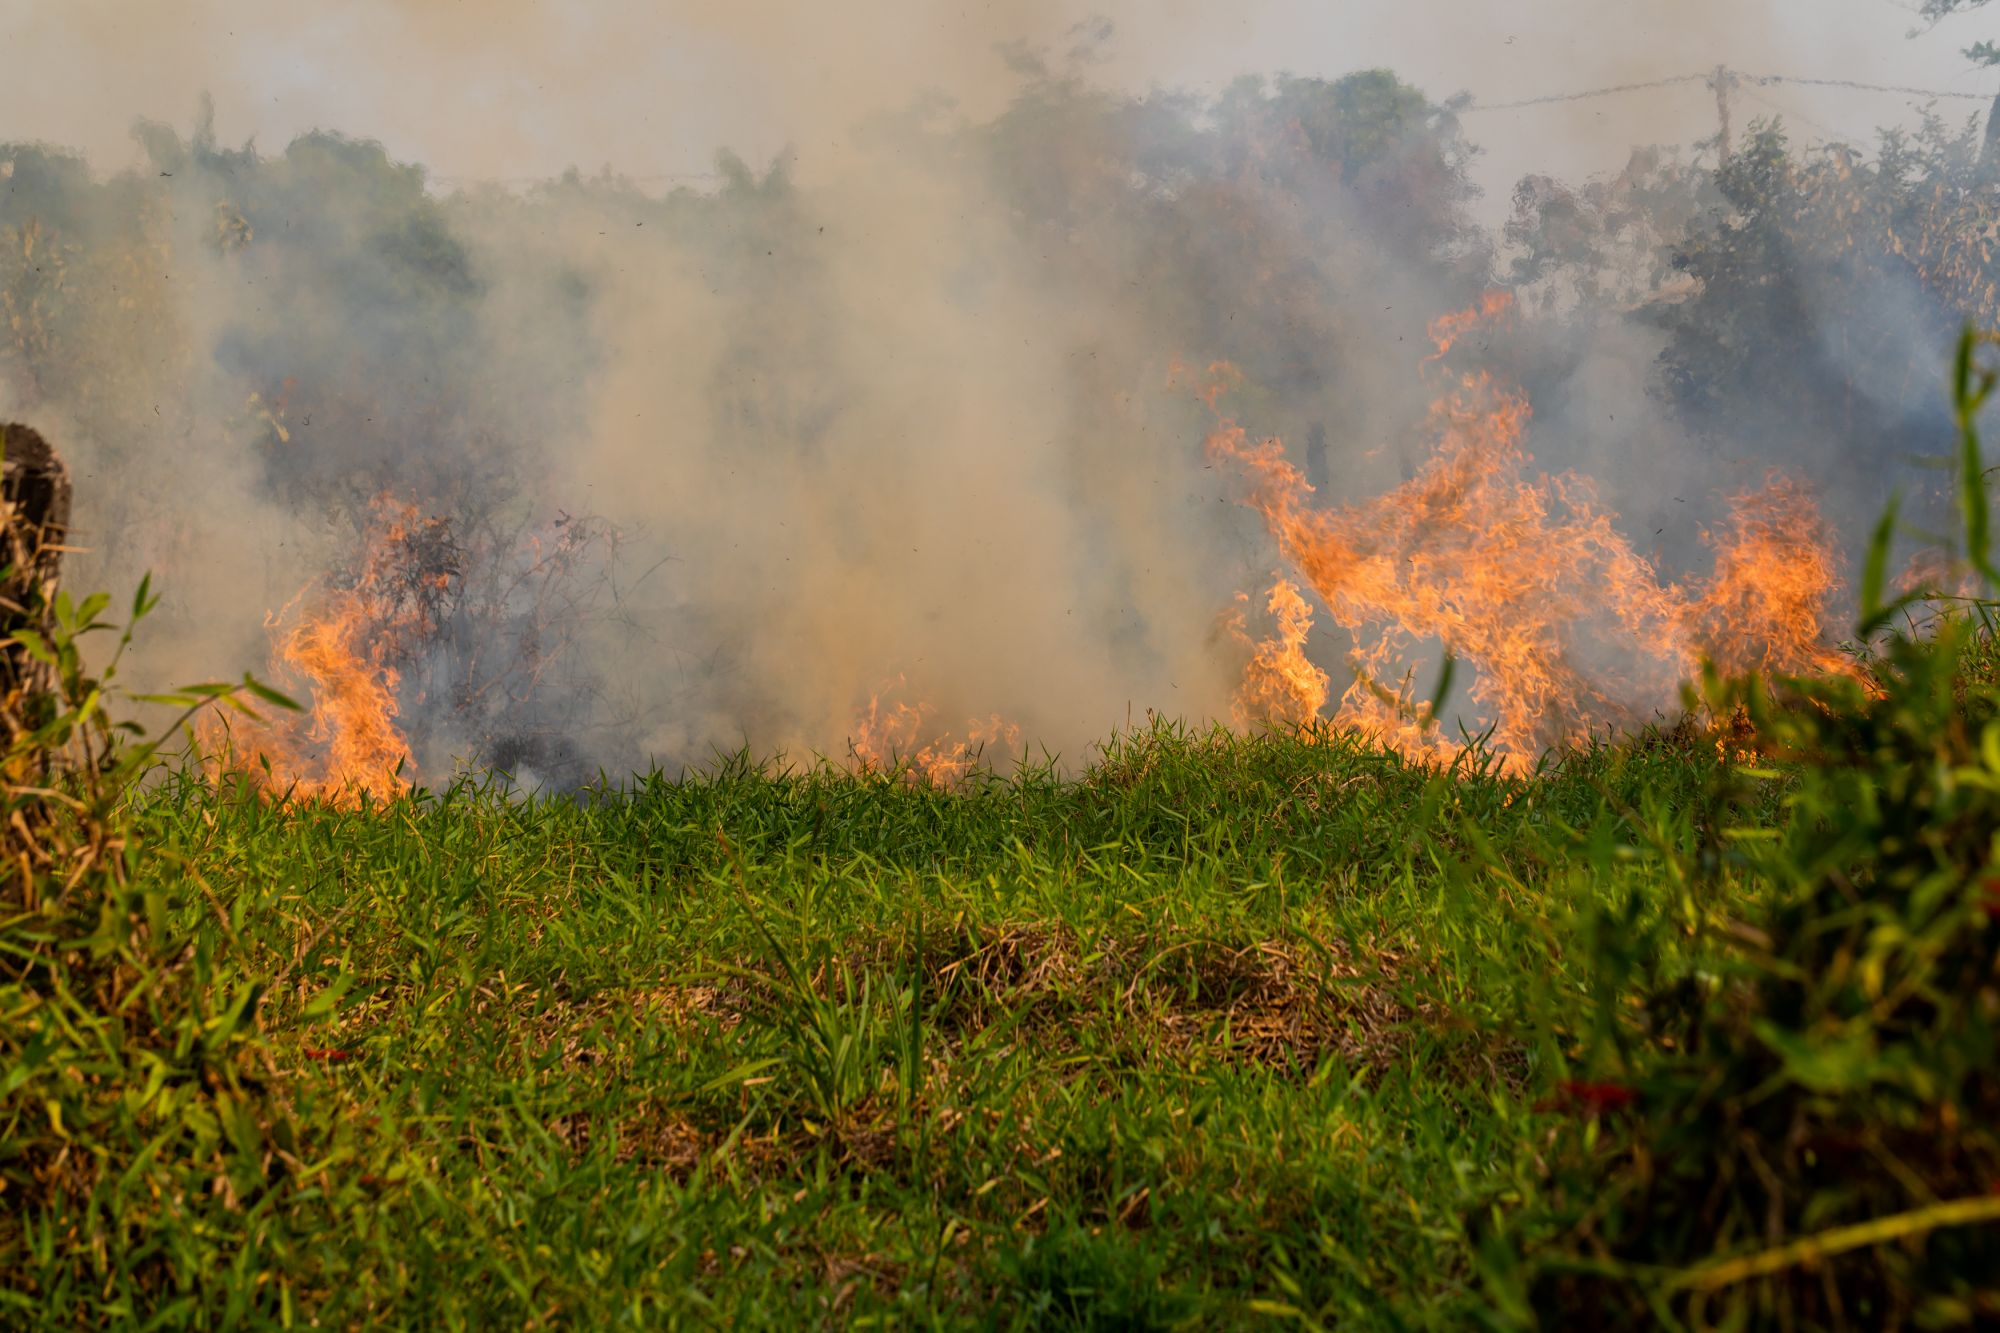 Brazil's Amazon rainforest in flames in 2019, burning at the highest rate since 2013. There have been 72,843 fires reported in Brazil since the beginning of the year. Credit Line: Noelly Castro/World Animal Protection